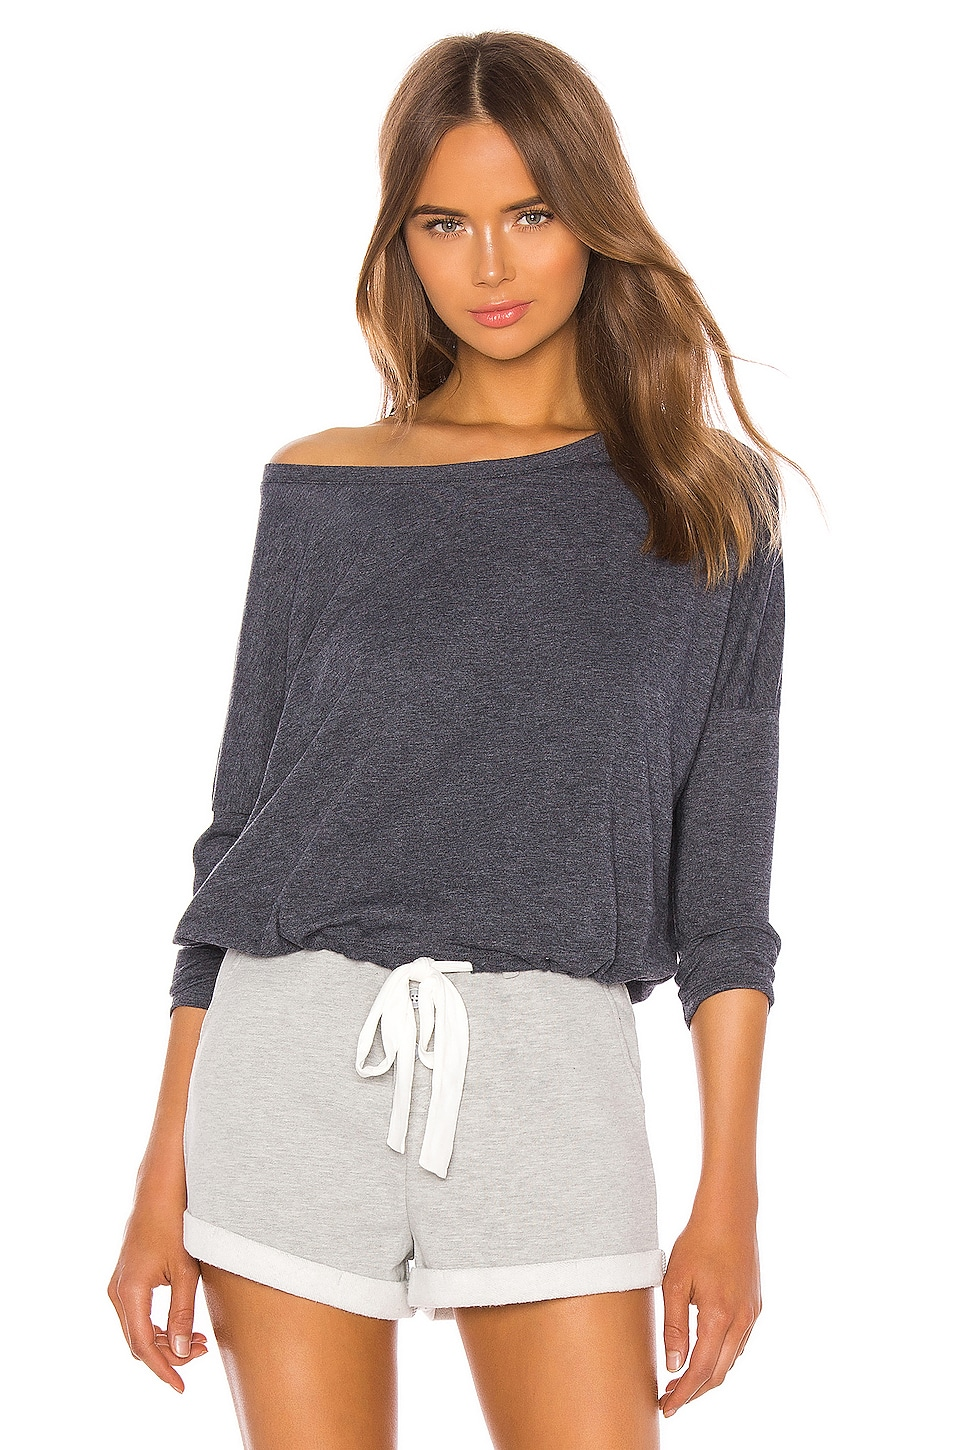 eberjey Heather Slouchy Tee in Indigo Sea